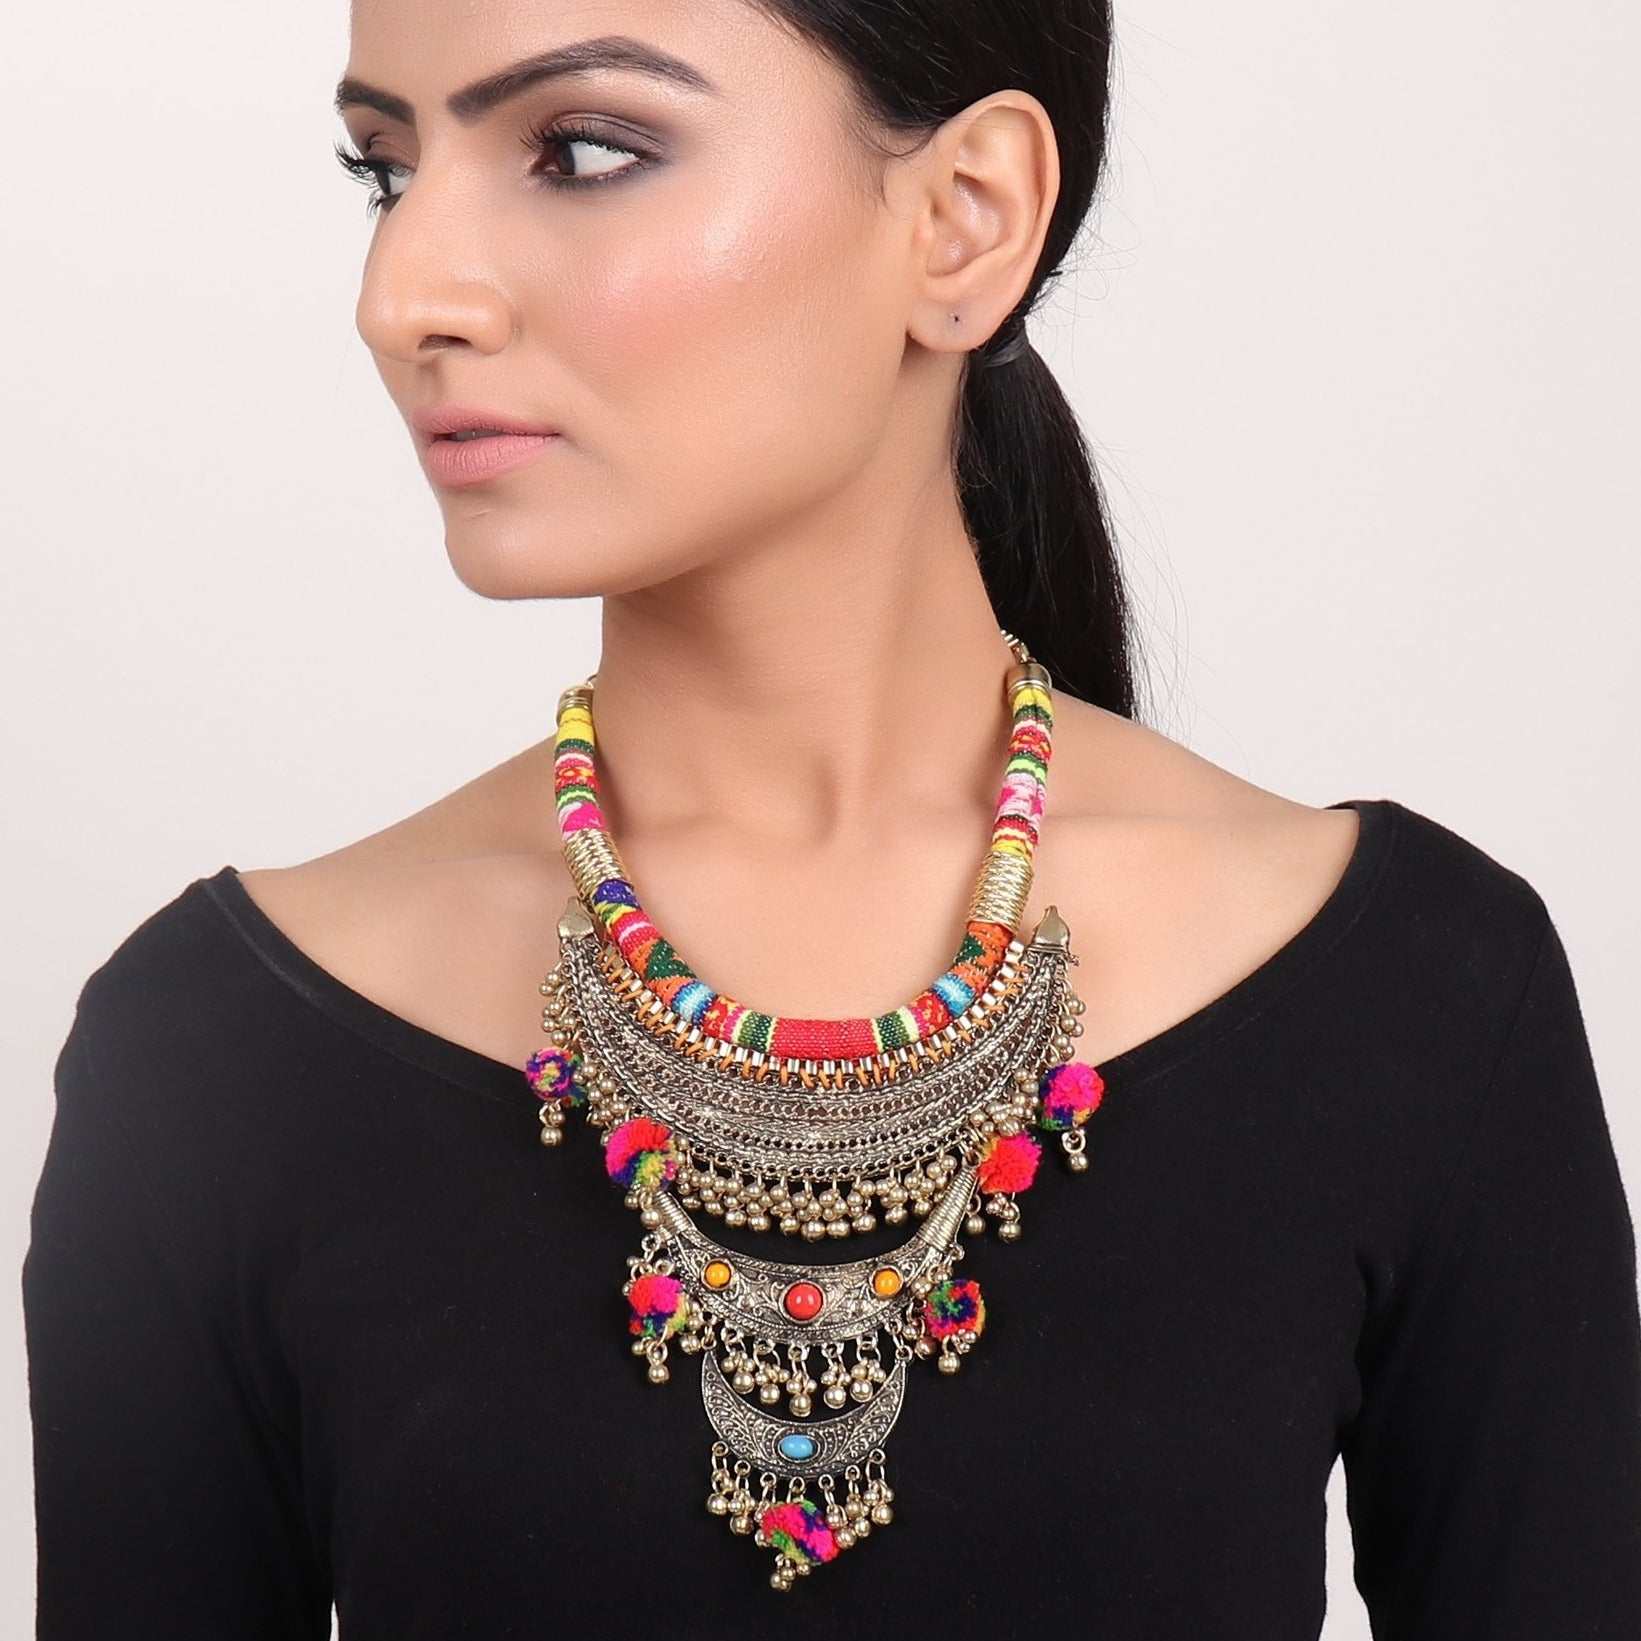 Necklace,Boho Statement Necklace in Golden - Cippele Multi Store